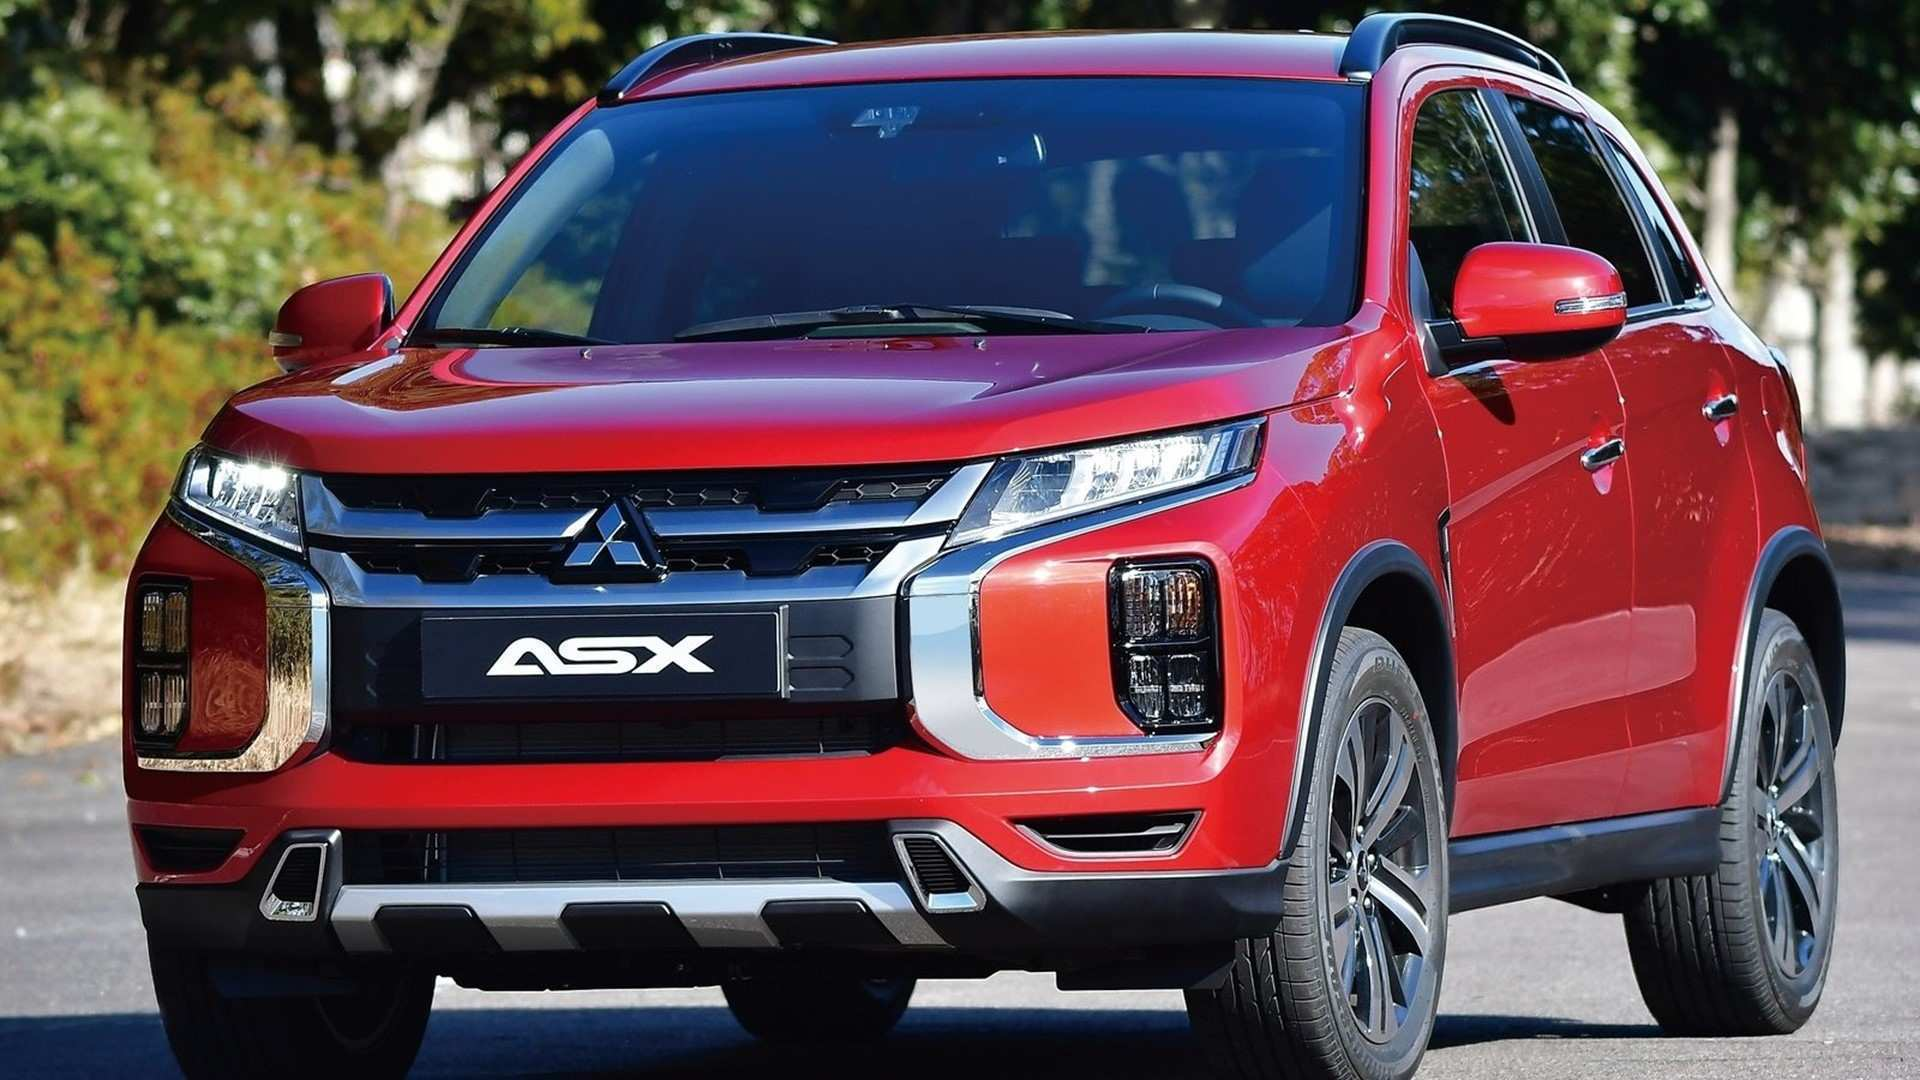 81 A Mitsubishi Asx 2020 Model Spy Shoot